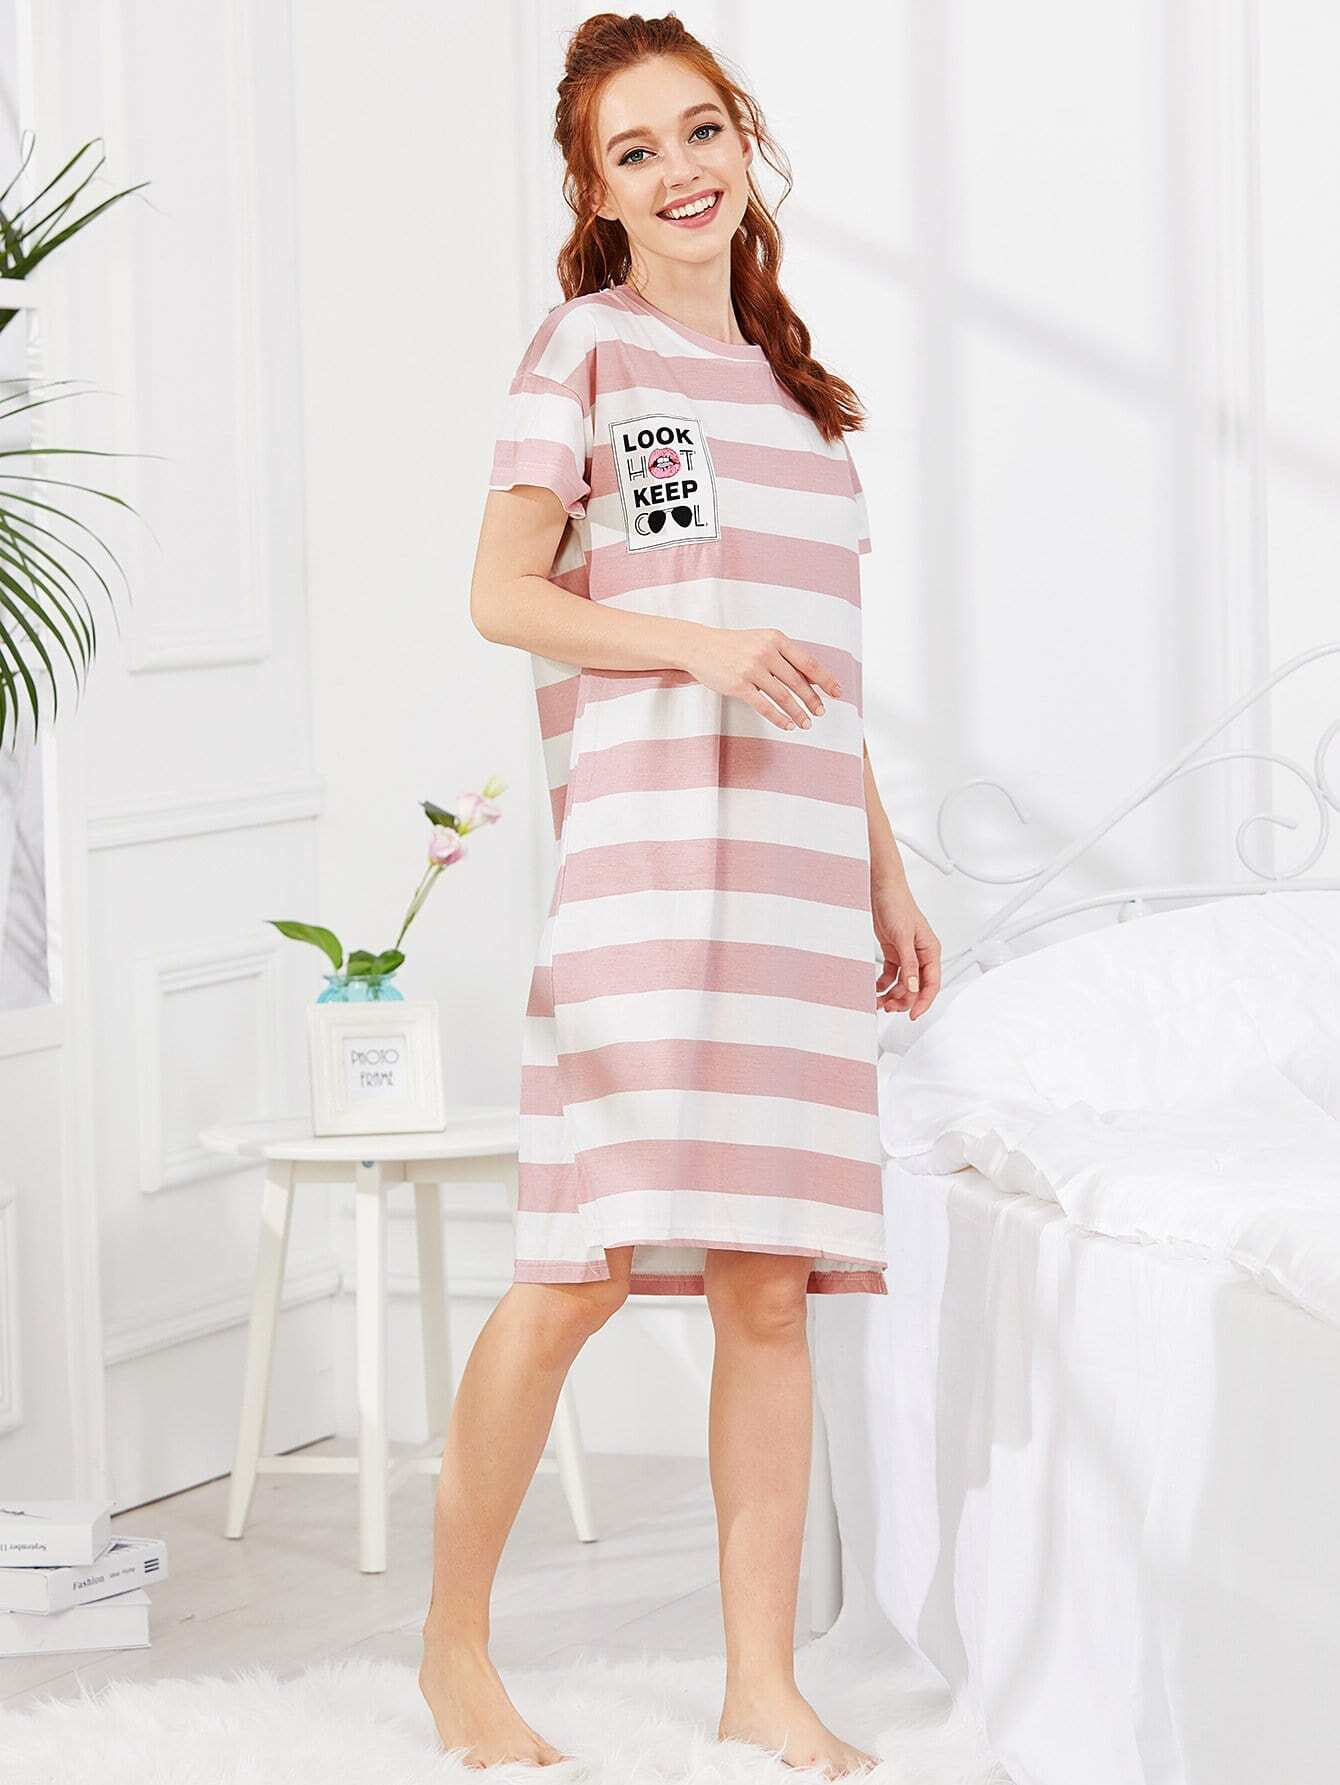 Contrast Striped Letter Print Dress contrast striped cat print dress